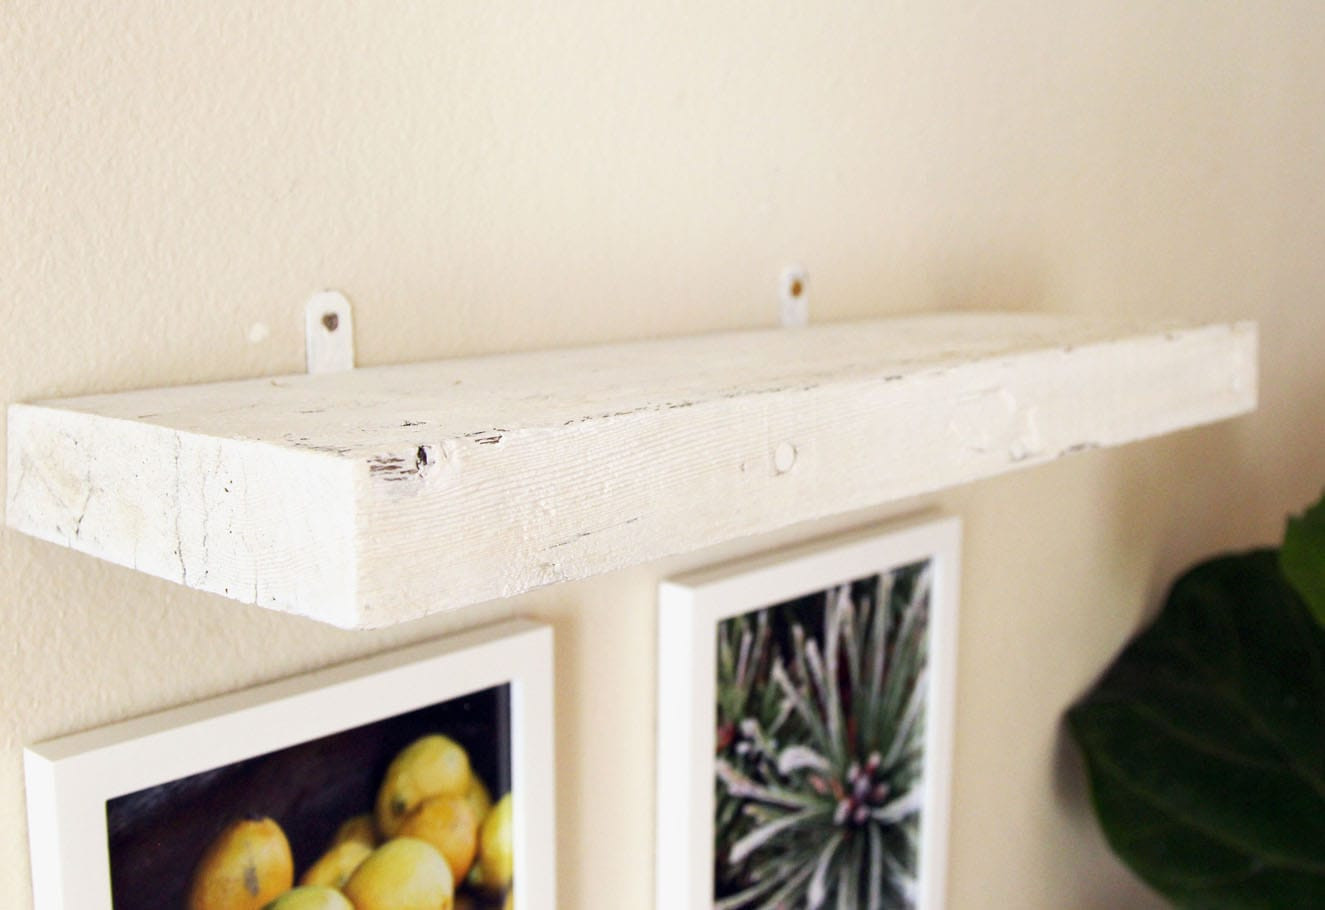 Best ideas about DIY Floating Wall Shelves . Save or Pin Easy Faux DIY Floating Shelves $5 in 15 minutes A Now.